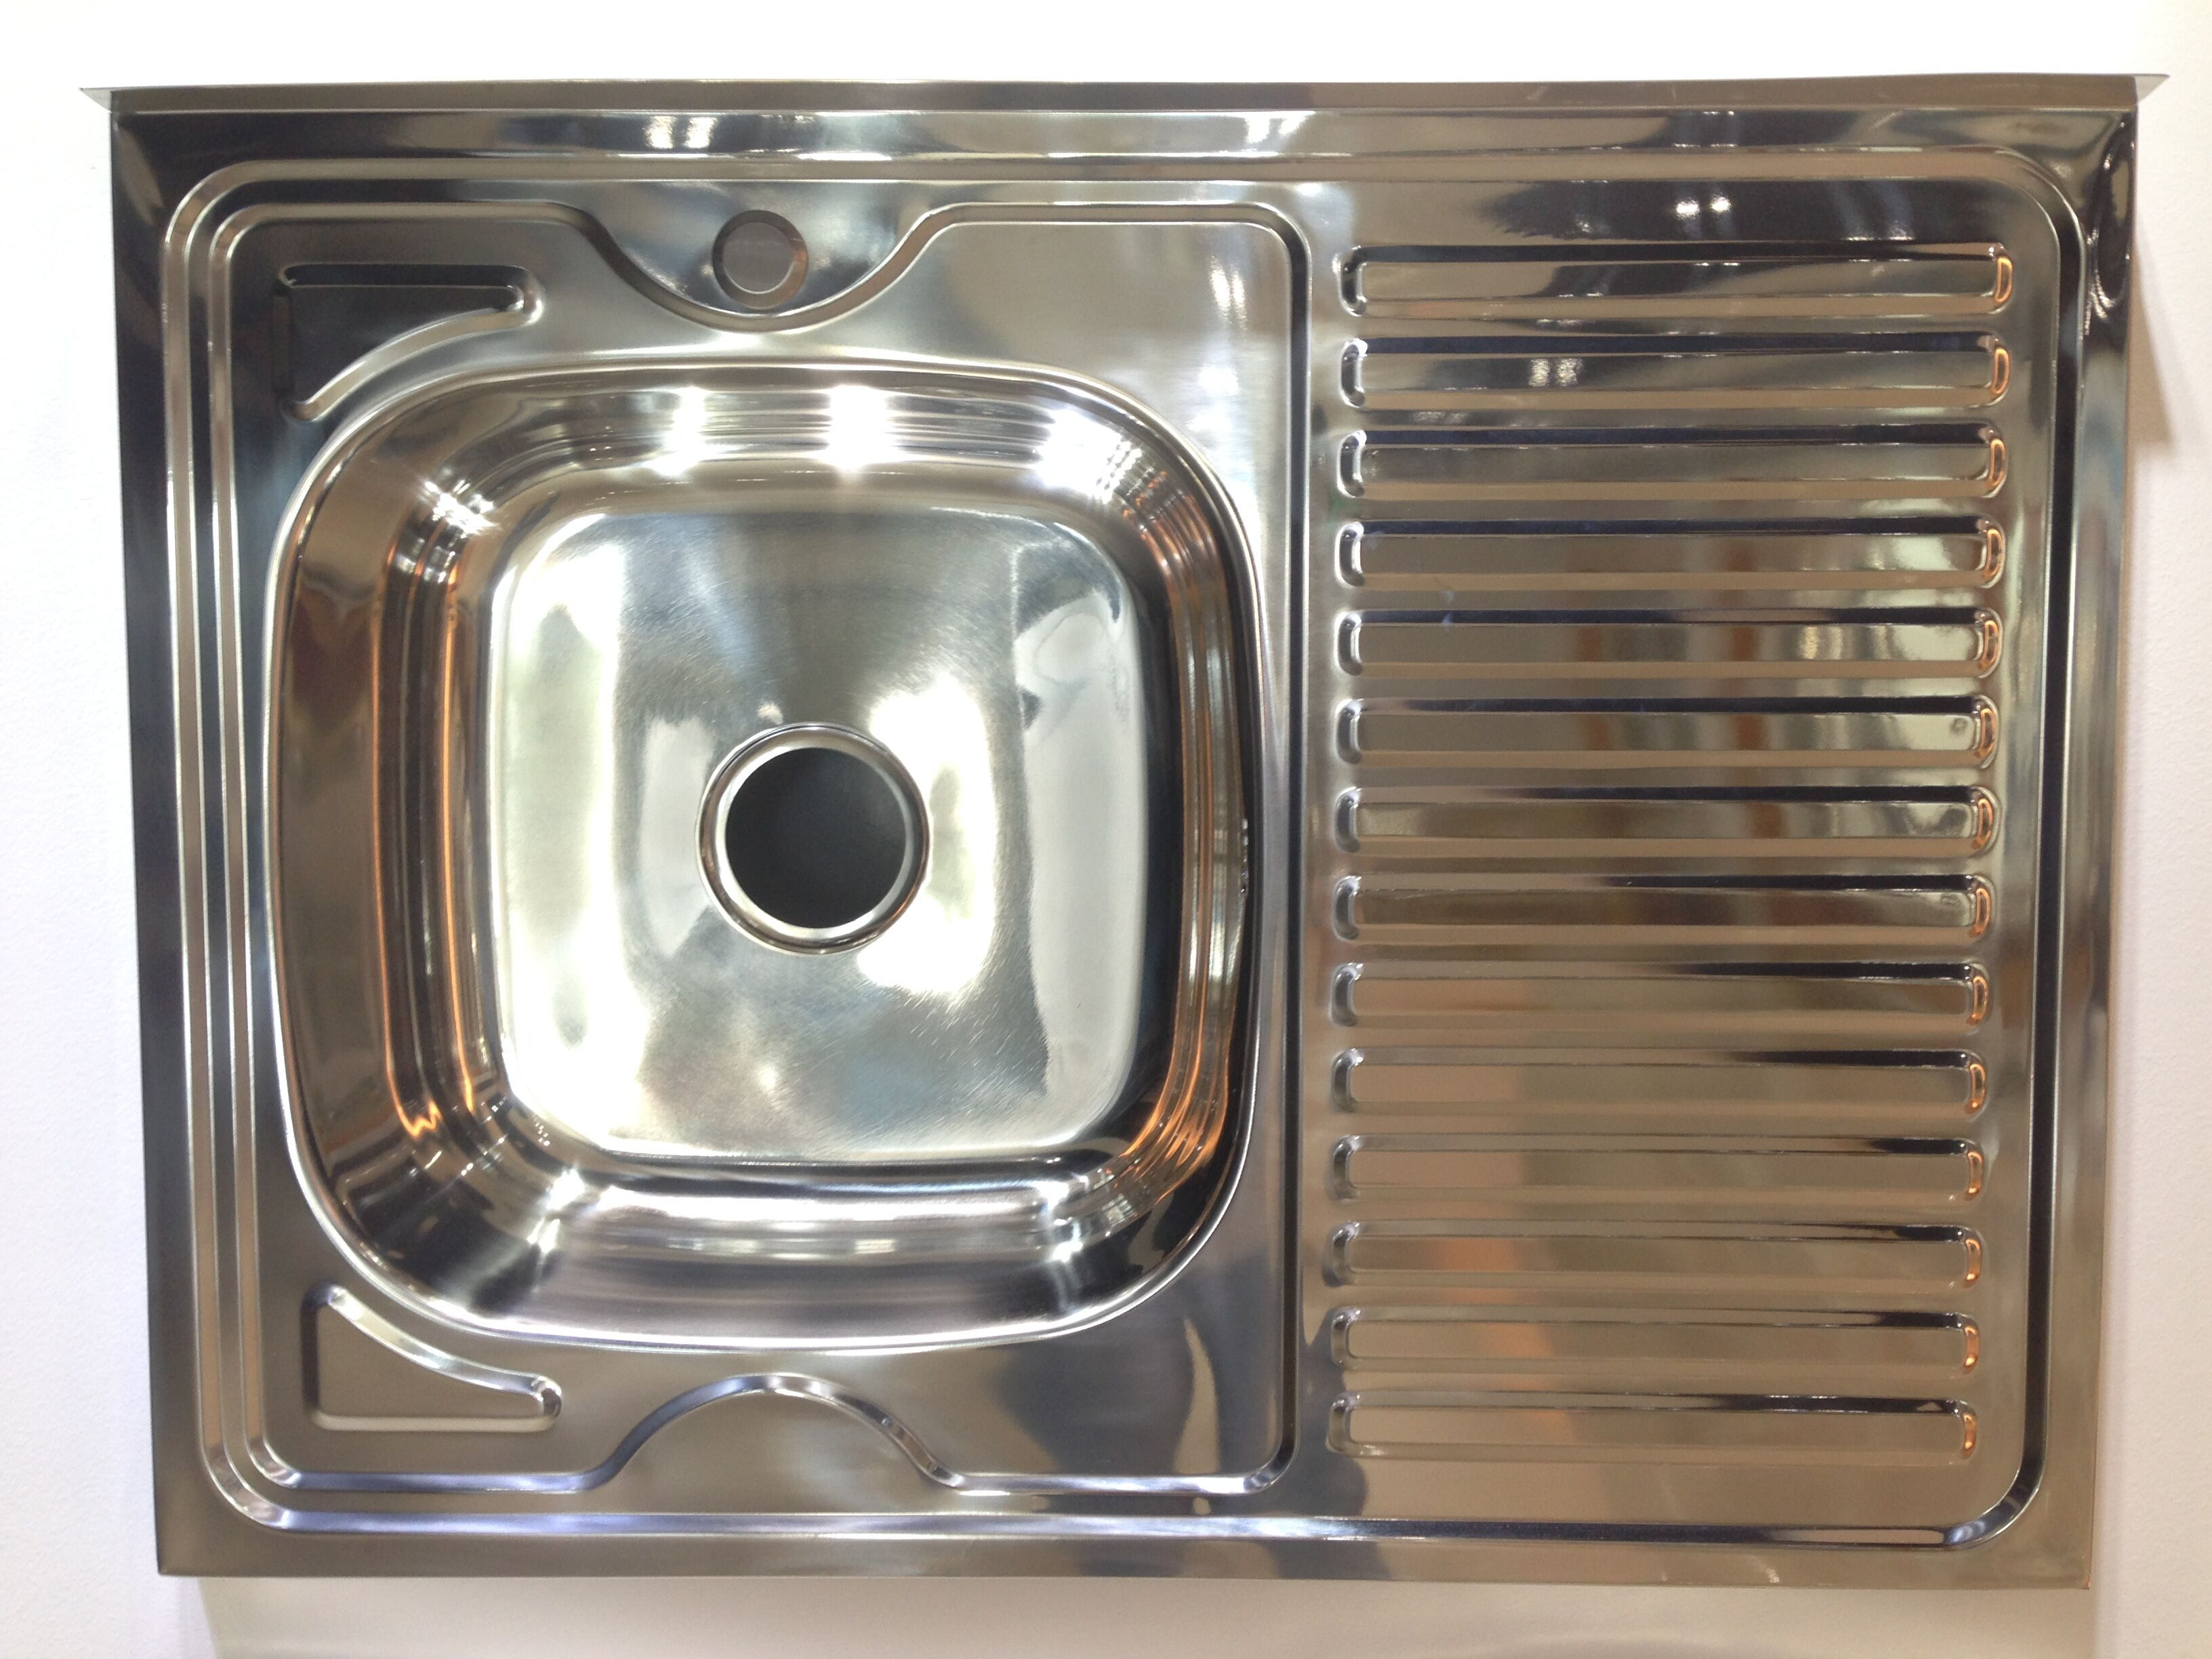 Sink factorysink manufacturerstainless steel sinkkitchen sink sink factorysink manufacturerstainless steel sinkkitchen sinkwash basin workwithnaturefo